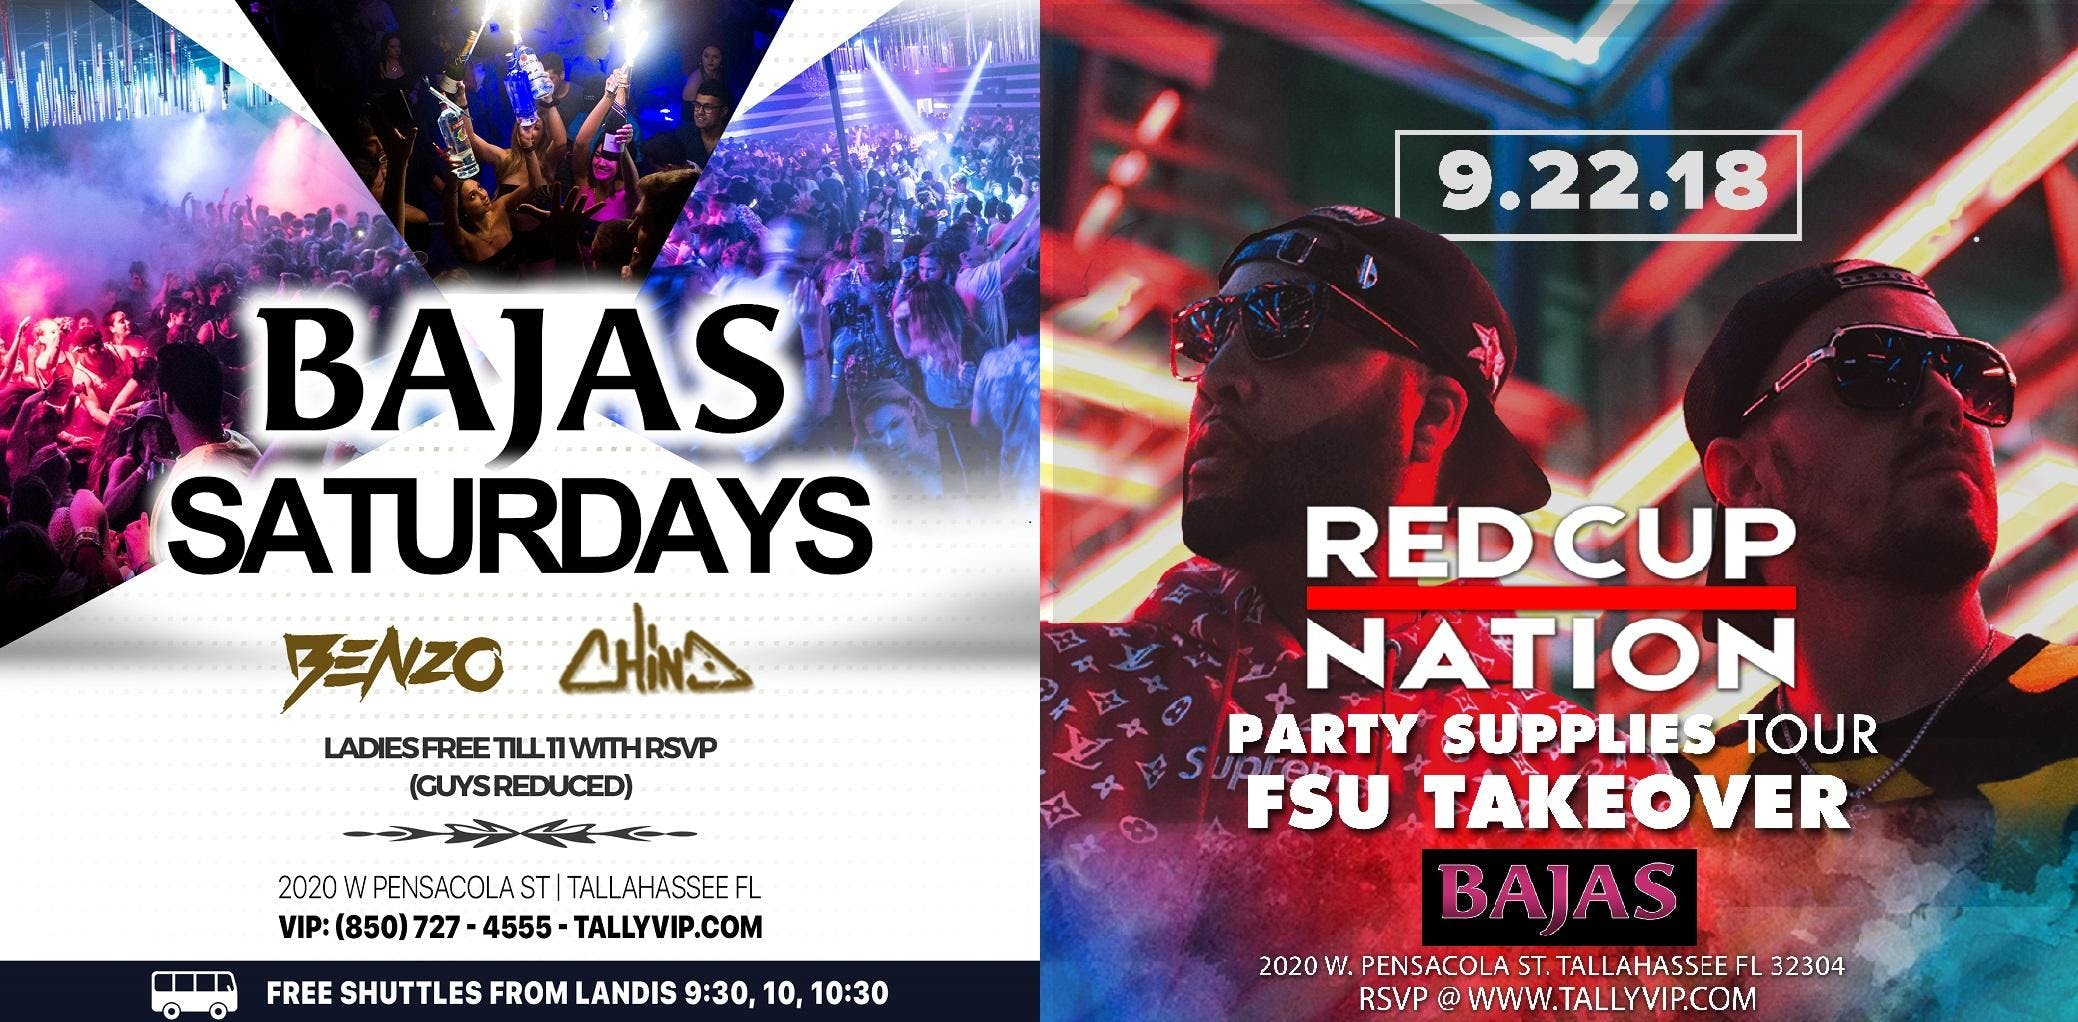 Bajas Saturday | Red Cup Nation Party Supplie